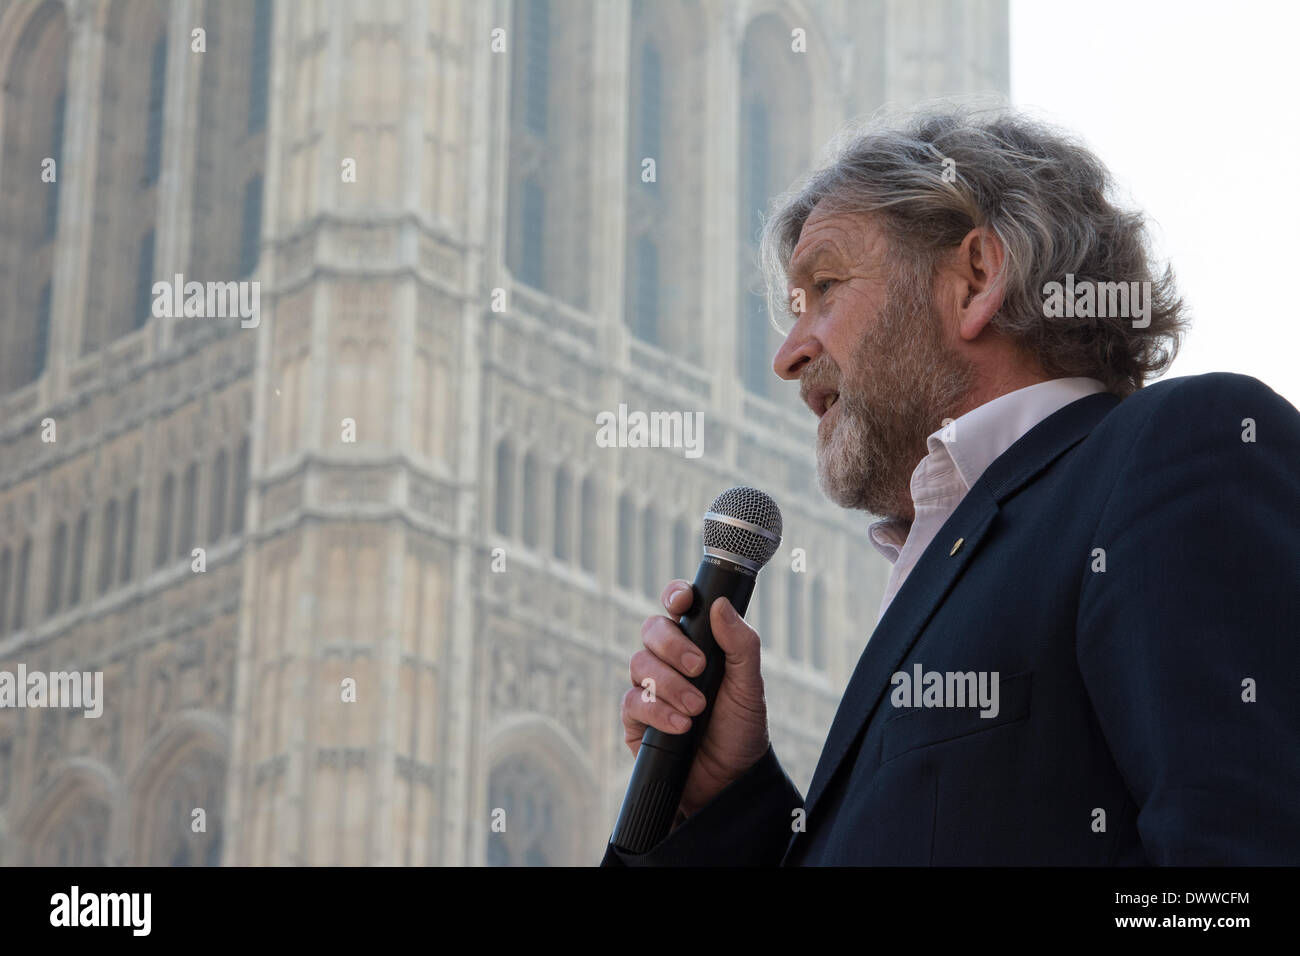 London, UK. 13th Mar, 2014. Joe Duckworth of the League Against Cruel Sports speaks as protesters gather outside Westminster while a parliamentary debate on the controversial badger cull takes place inside the house of commons. Badgers have been linked to the spread of bovine tuberculosis in cattle and experimental culls of badgers were carried out in 2013 in an attempt to stop the spread of the disease. Anti-cull protestors have claimed that the cull is inefficient, inhumane and scientifically flawed. Credit:  Patricia Phillips/Alamy Live News - Stock Image